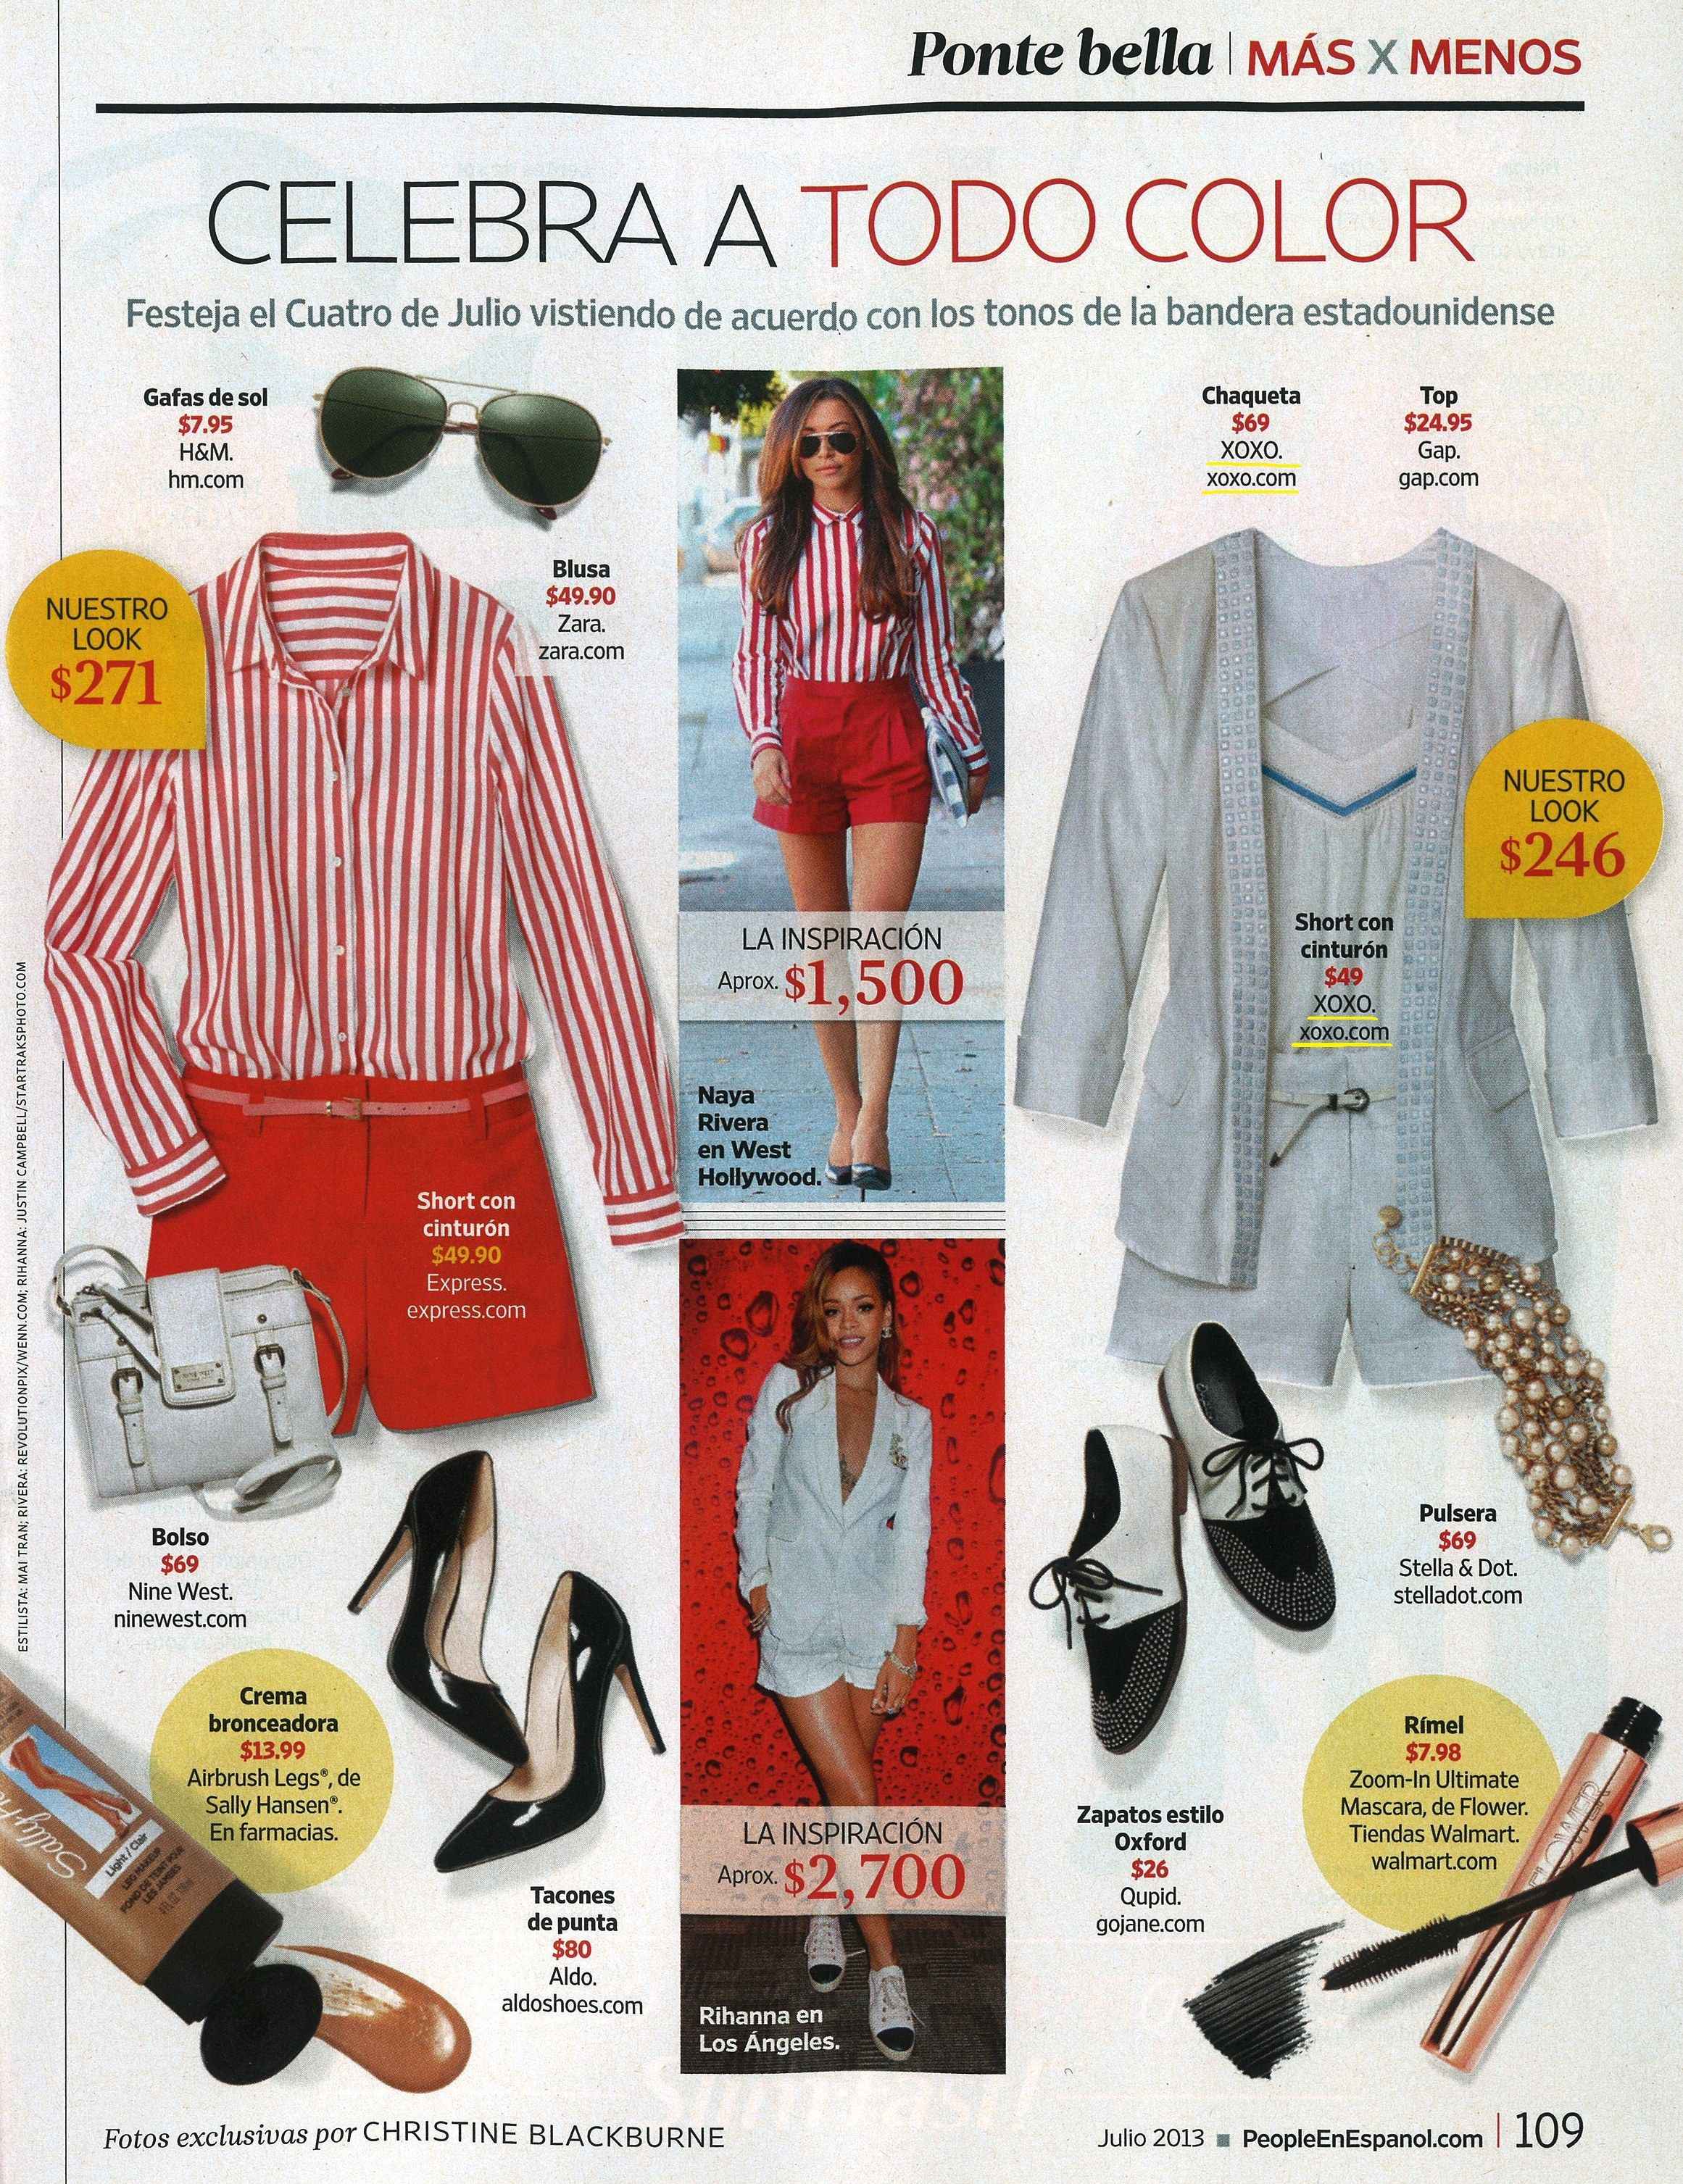 XOXO Studded Linen Blazer and belted Linen short featured in the July issue of @peopleenespanol magazine. Both available in stores and online at Macy's.